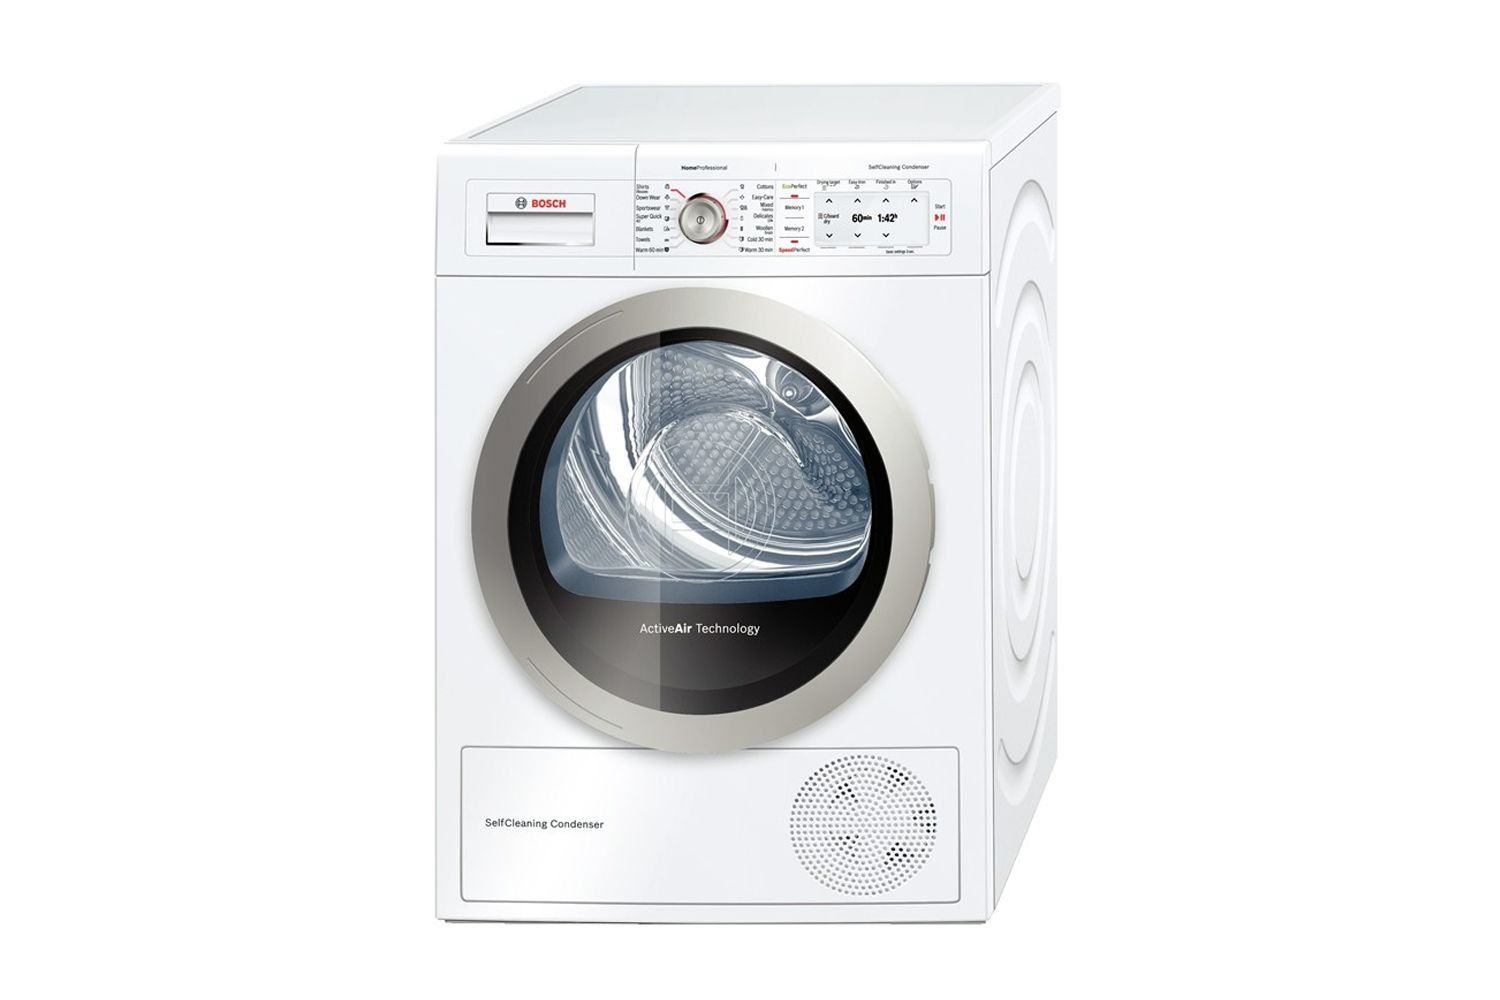 Bosch 7kg Self Cleaning Condenser Heat Pump Dryer Electric Dryers Compact Washer And Dryer Compact Laundry